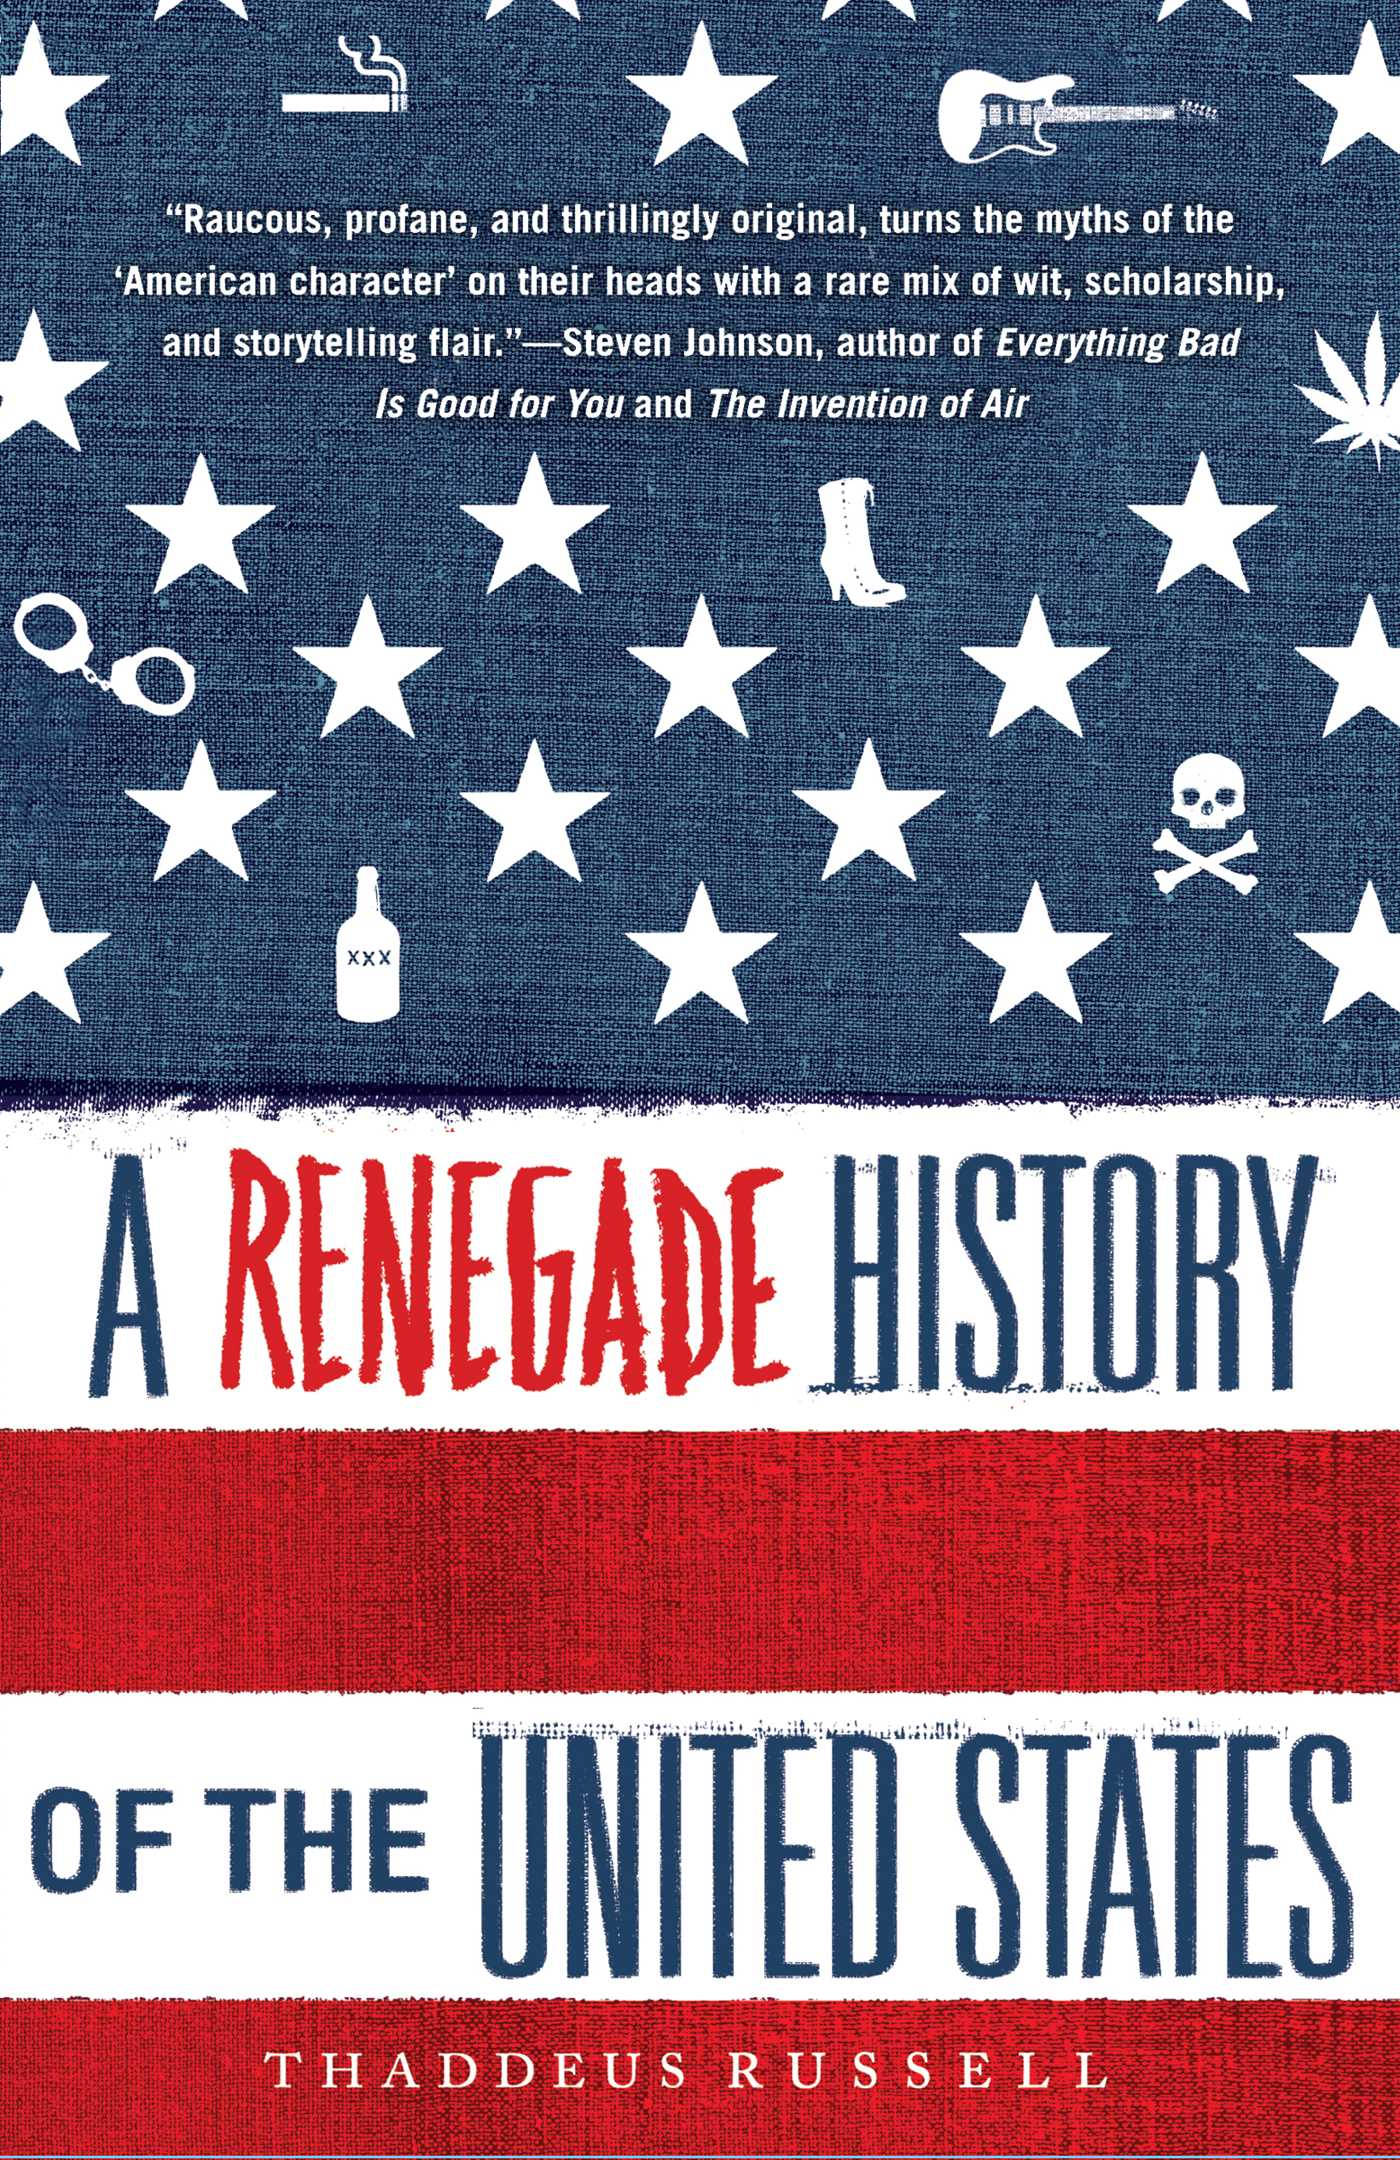 A-renegade-history-of-the-united-states-9781416571094_hr